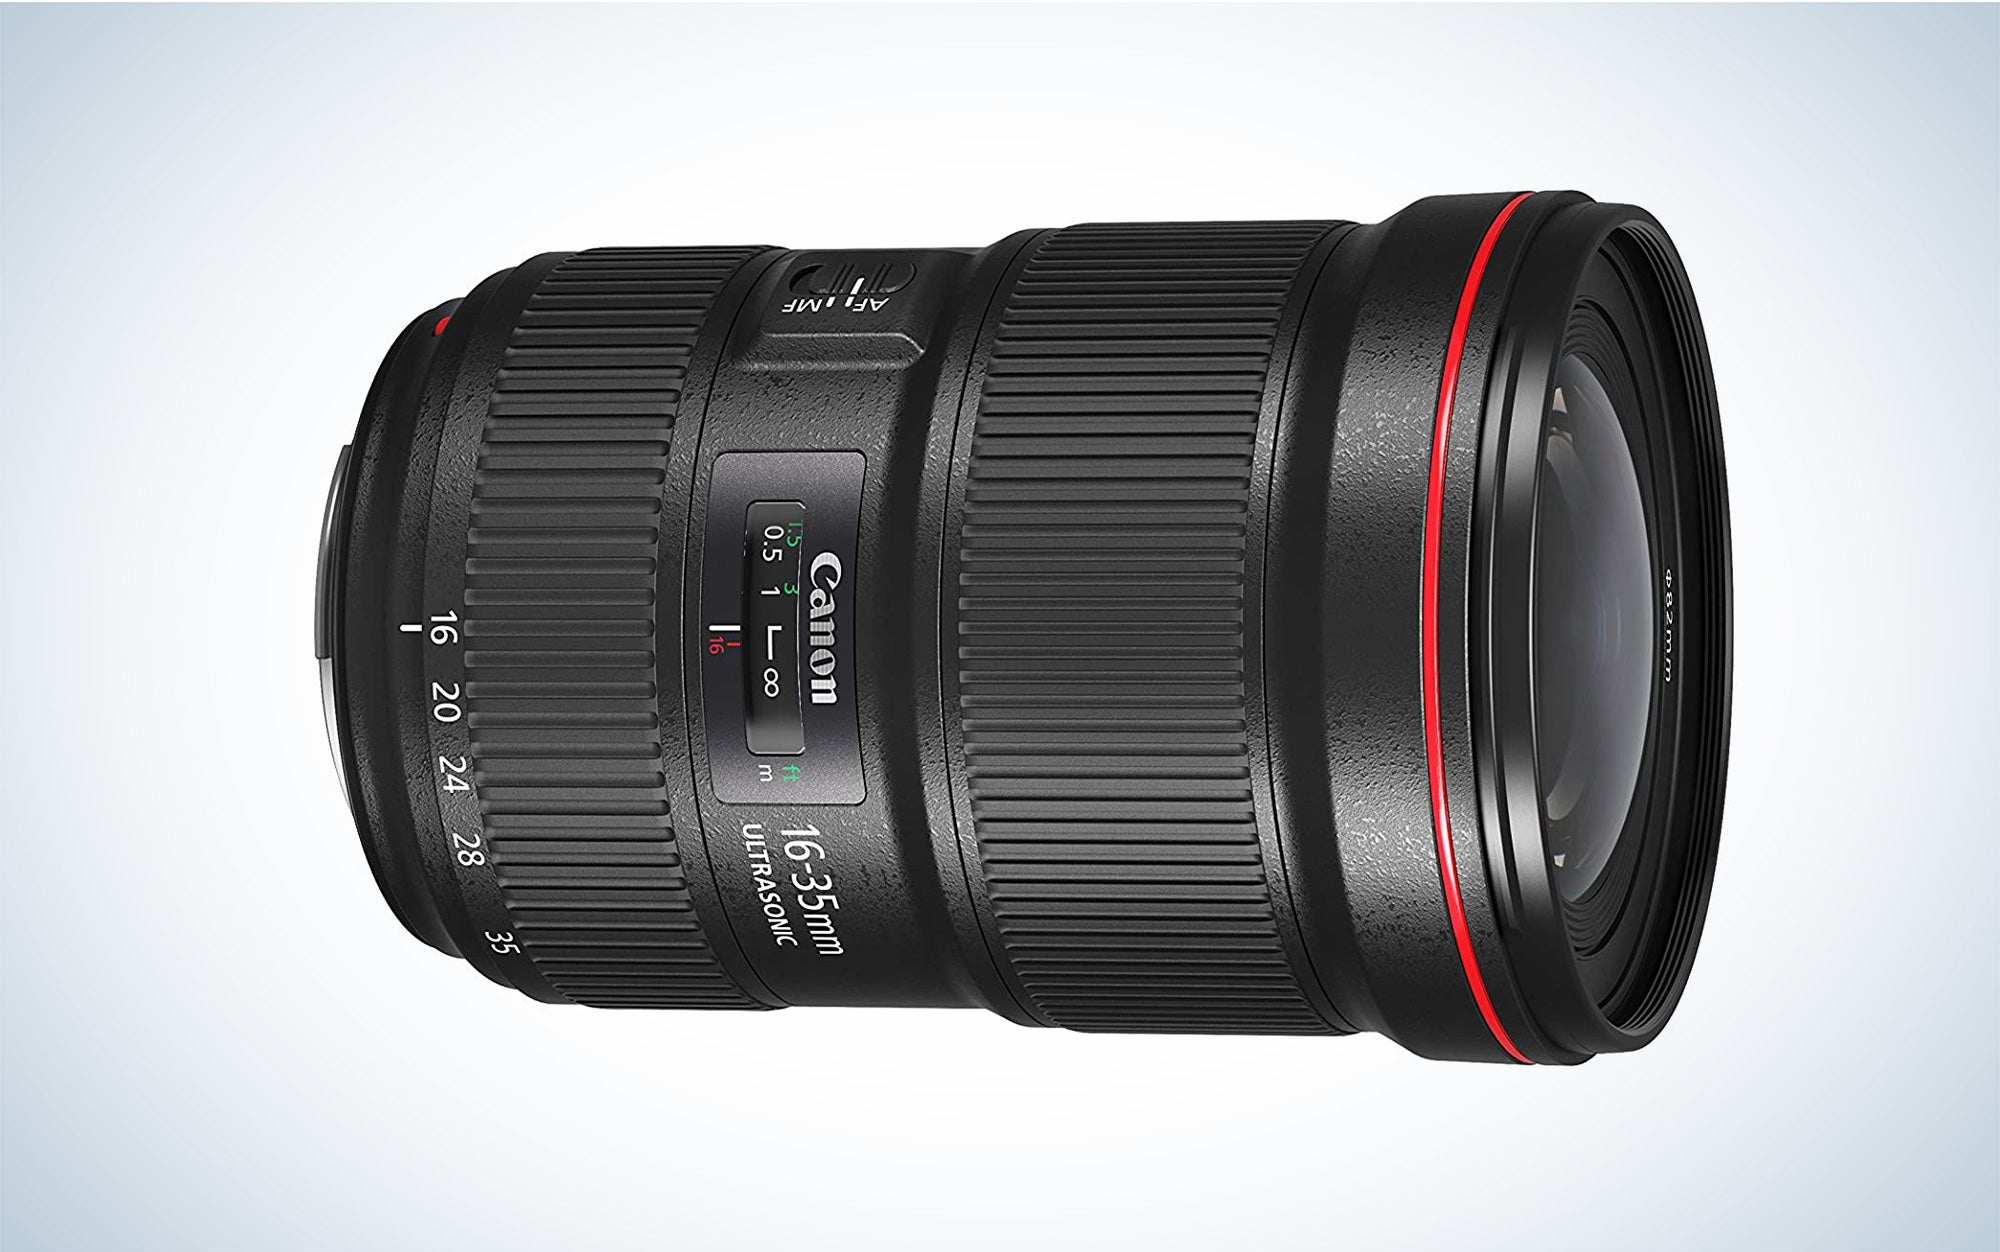 Canon 16-35mm zoom lens is the best wide angle lens.